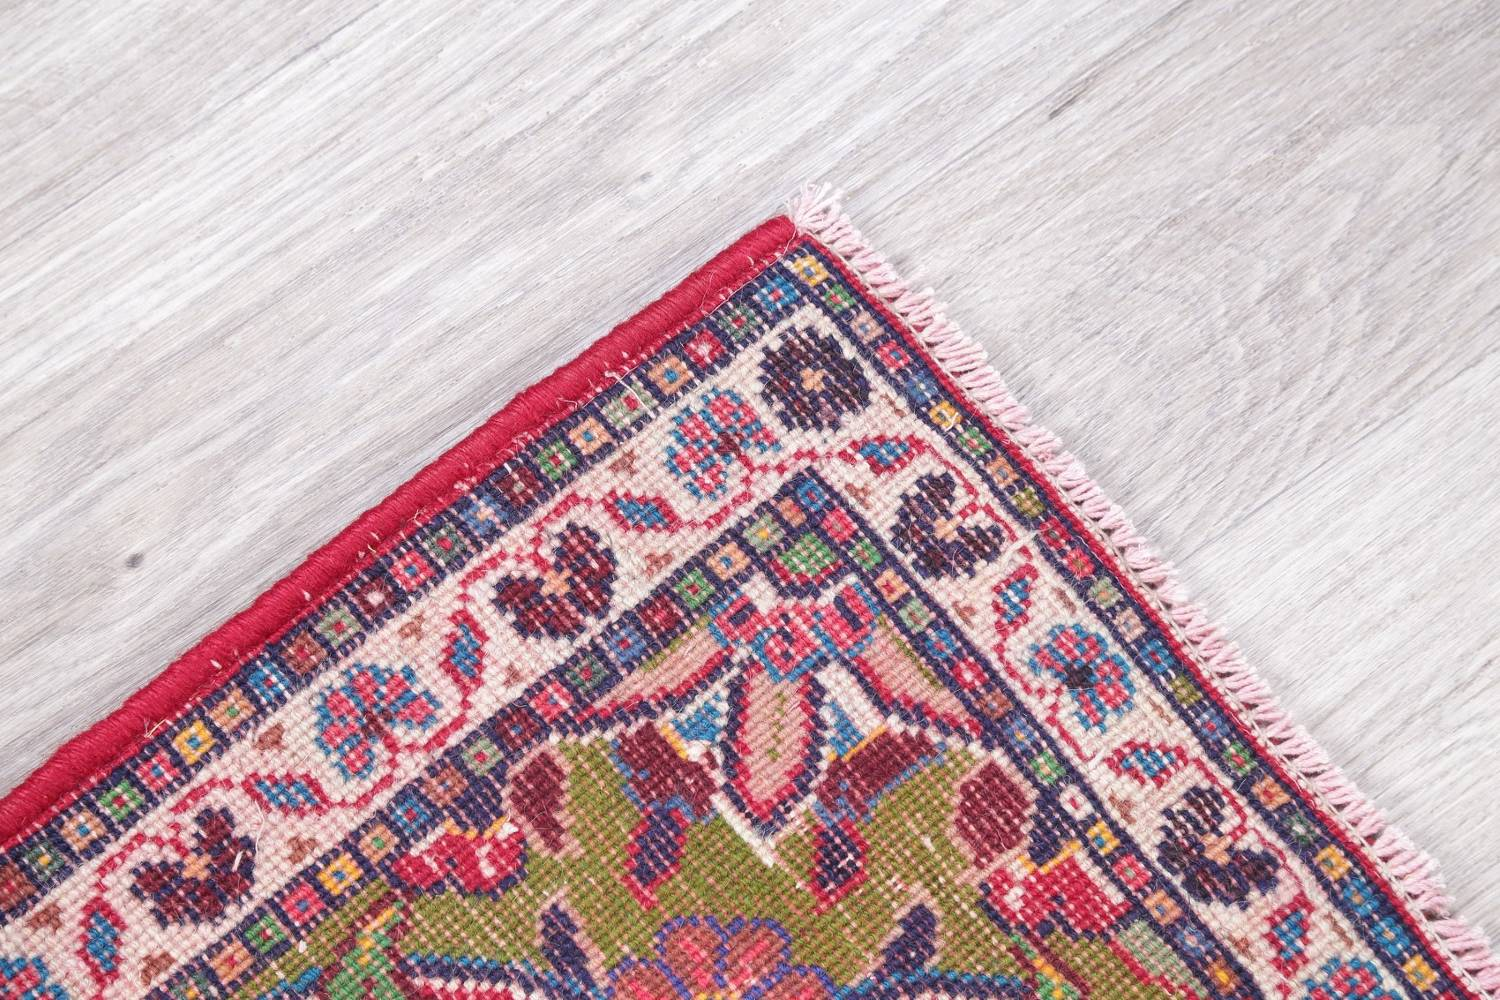 Floral Ardebil Persian Hand Knotted 2x2 Red Square Wool Rug